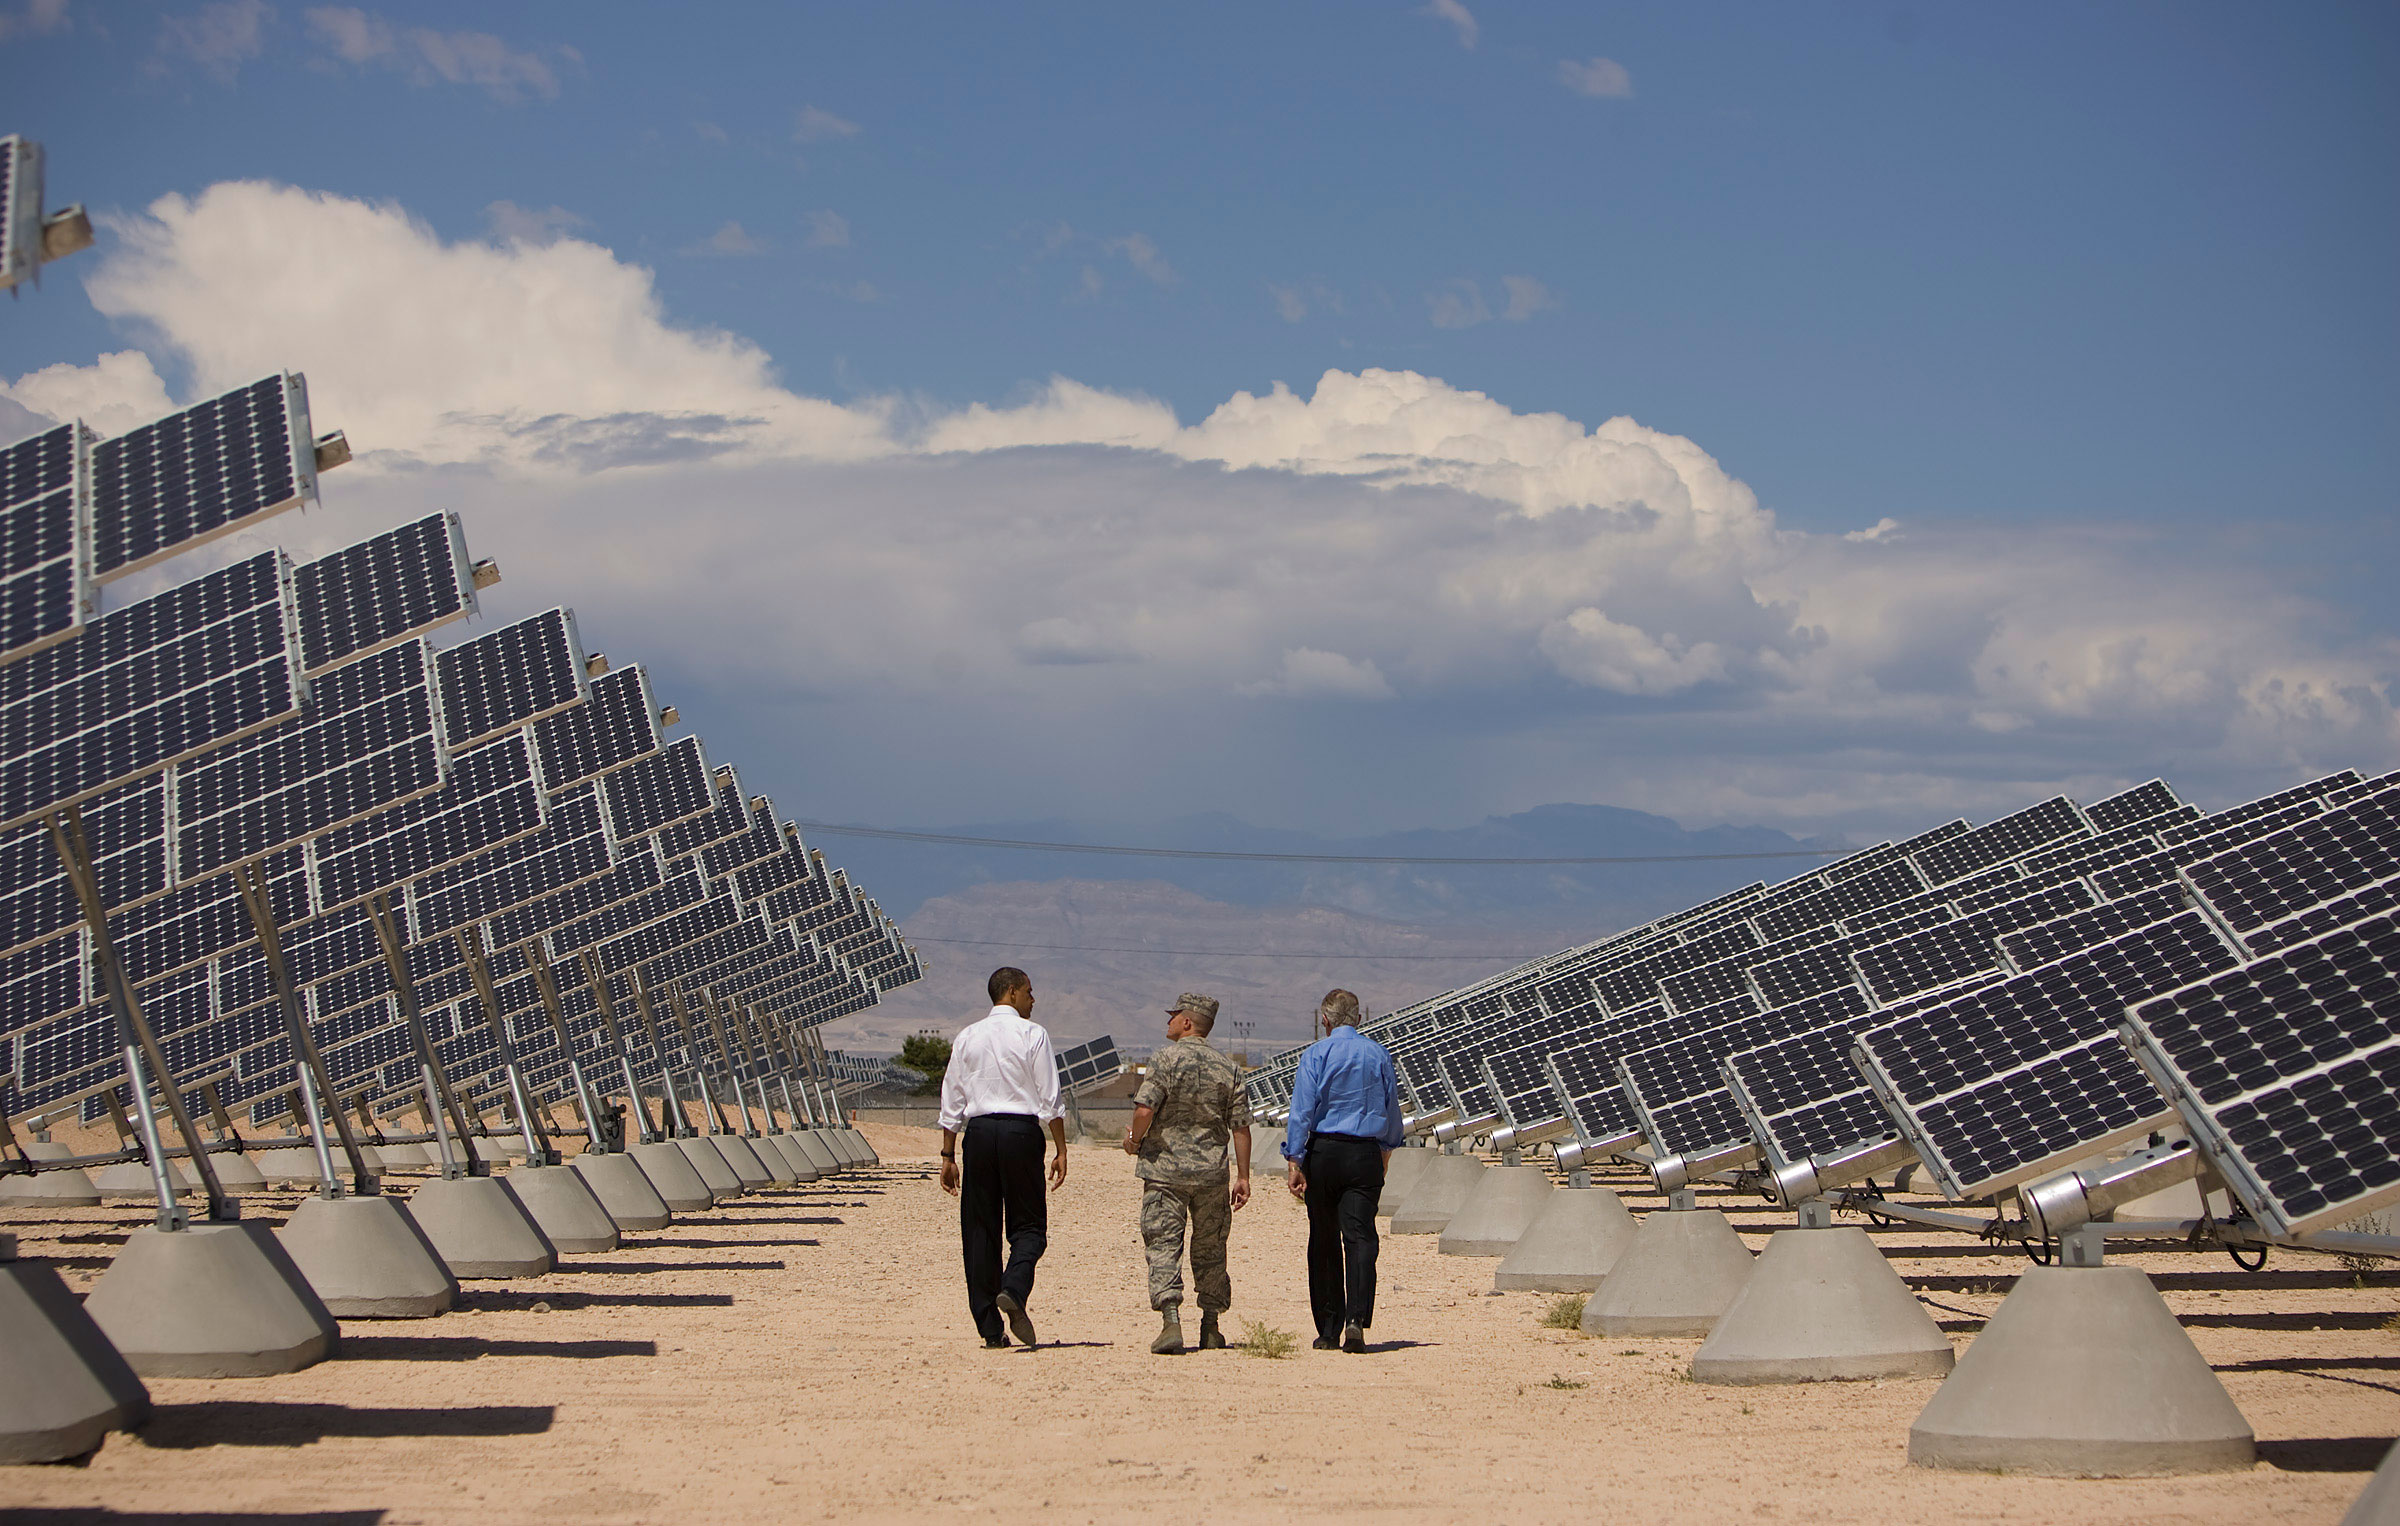 Barack Obama takes a tour of solar power facilities at Nellis Air Force Base in Las Vegas.